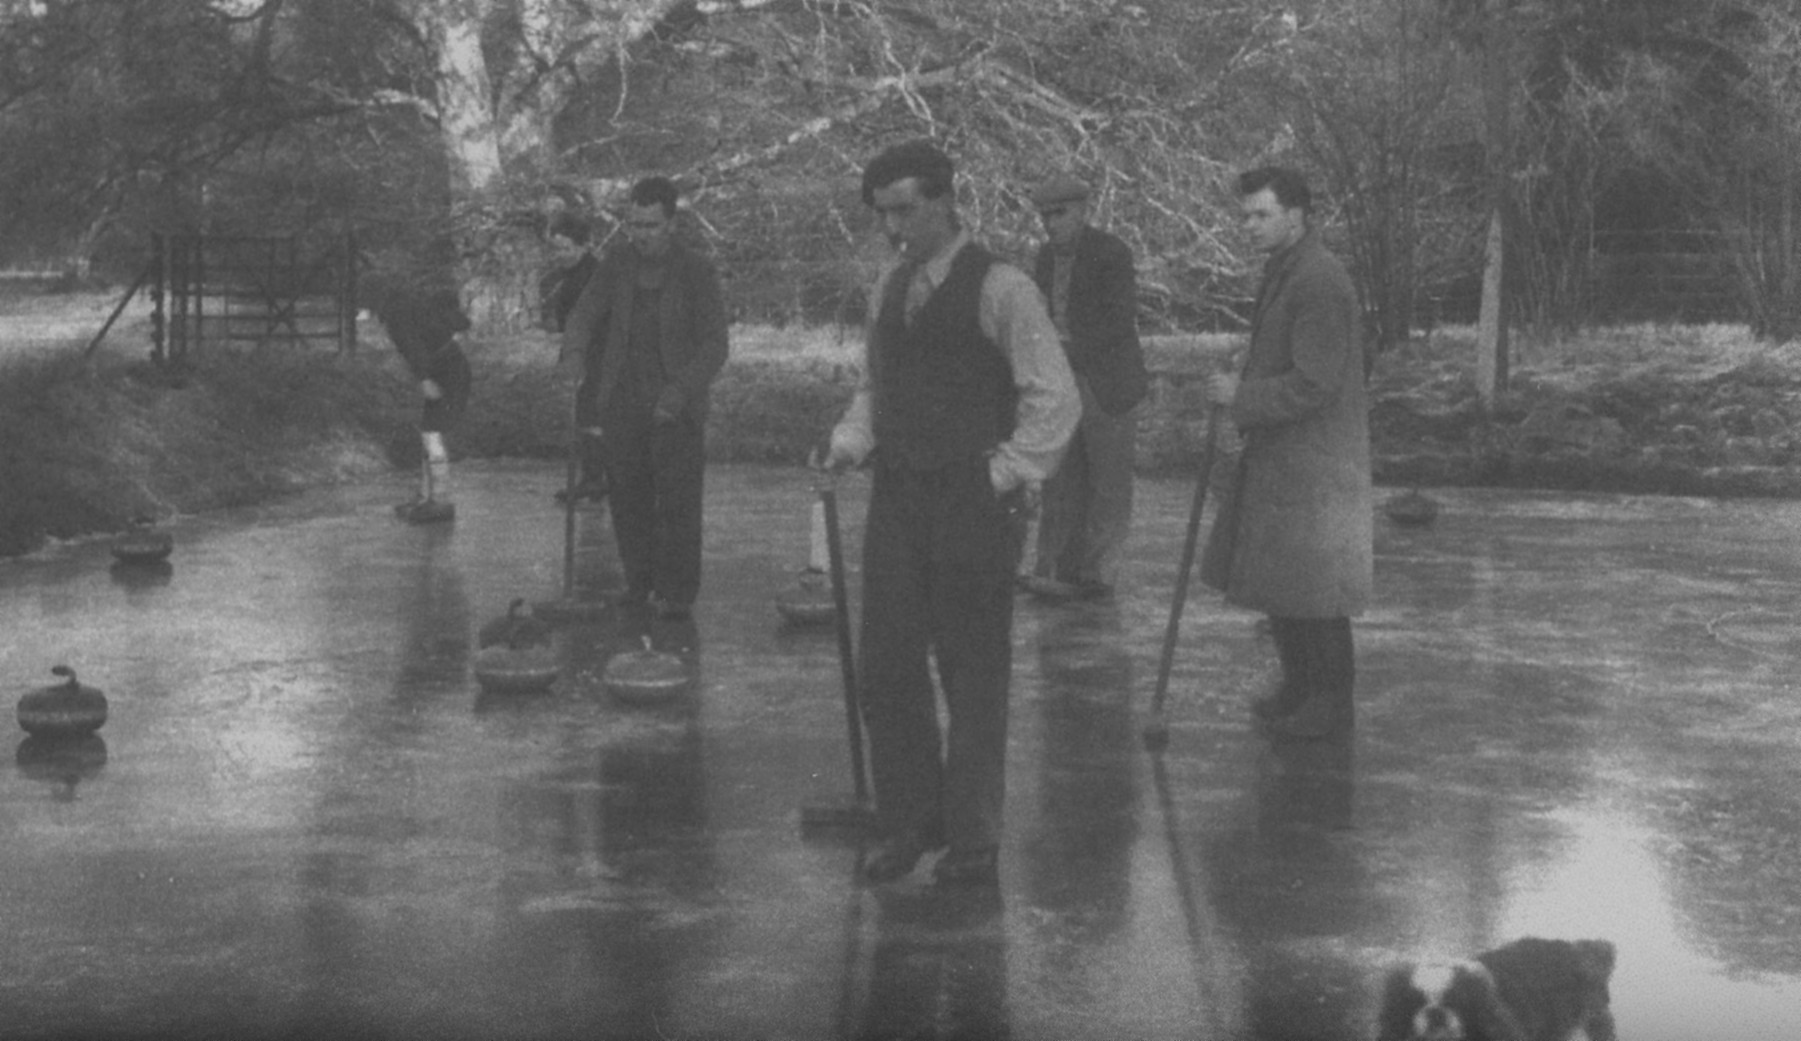 Curling on the curling pond at Ardkinglas